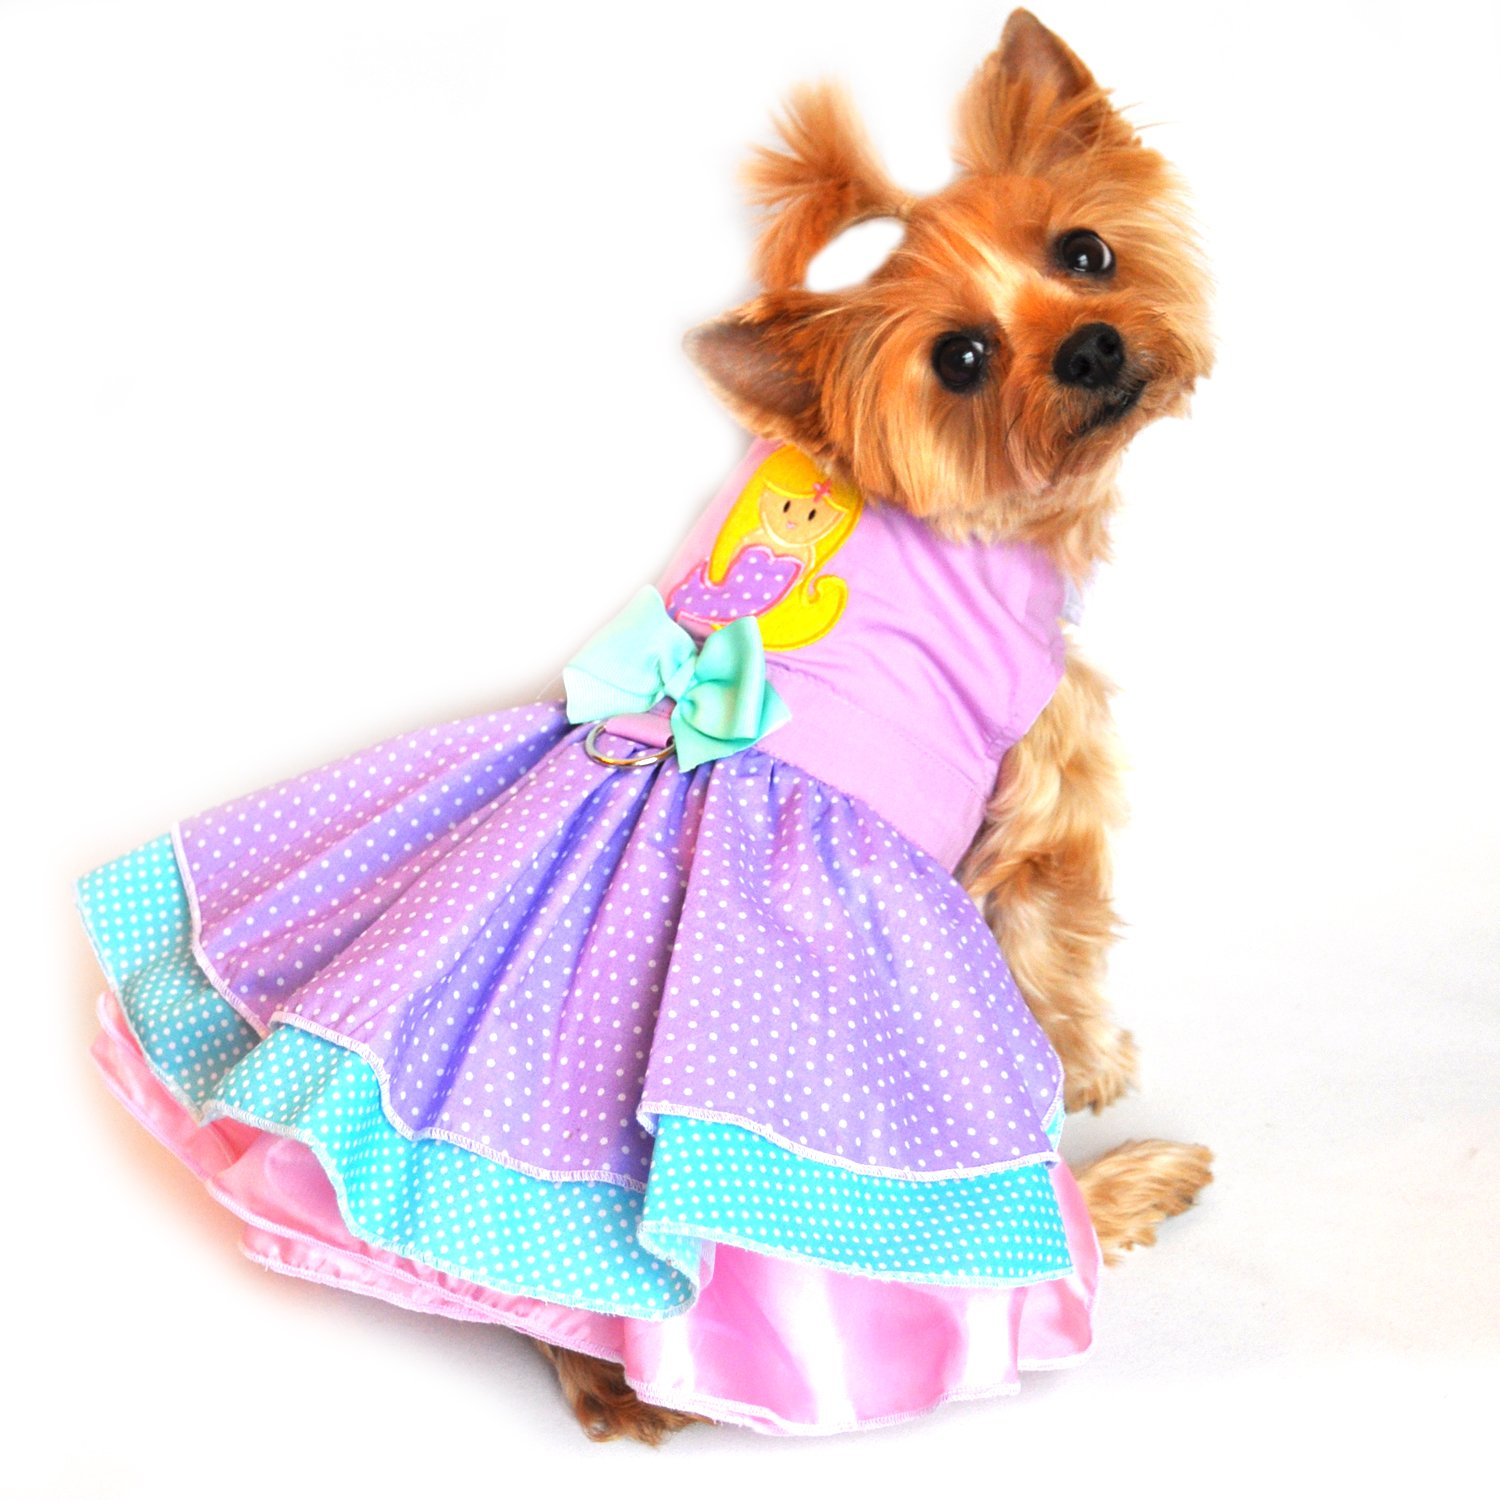 "Doggie Design Lavender Mermaid/Polka Dot Party Harness Dress for small dogs in Size Medium (Chest 16-19"" Neck 13-16"" - Pets weighting 11-15lbs) от Nazya"